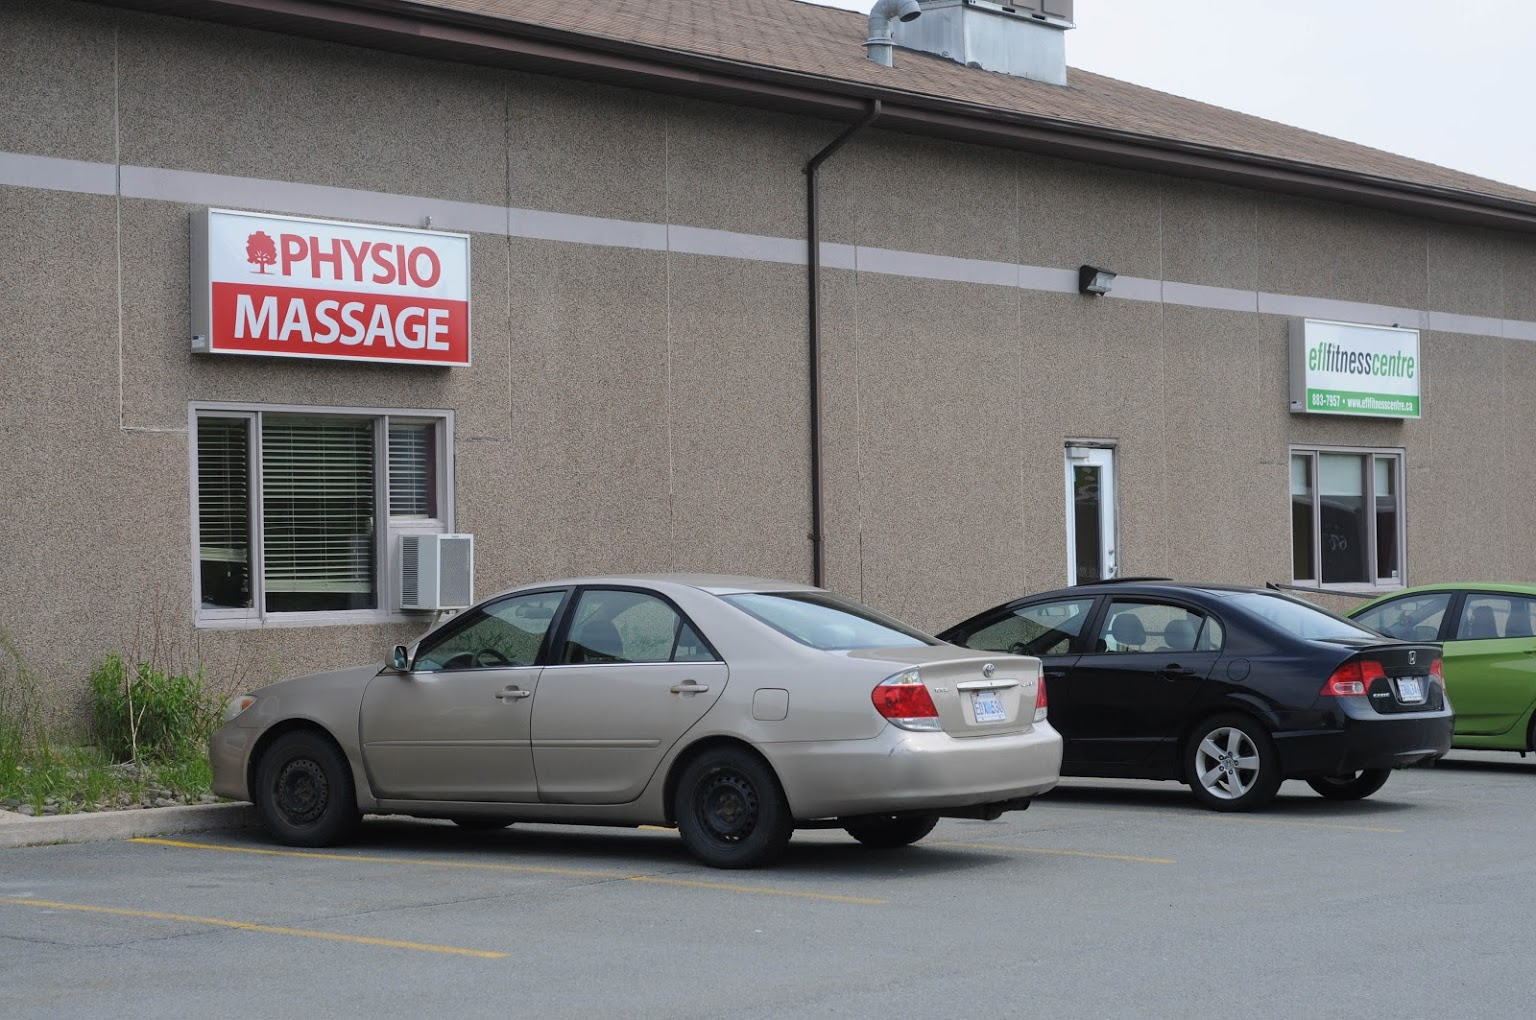 Photograph of the Elmsdale Physiotherapy exterior